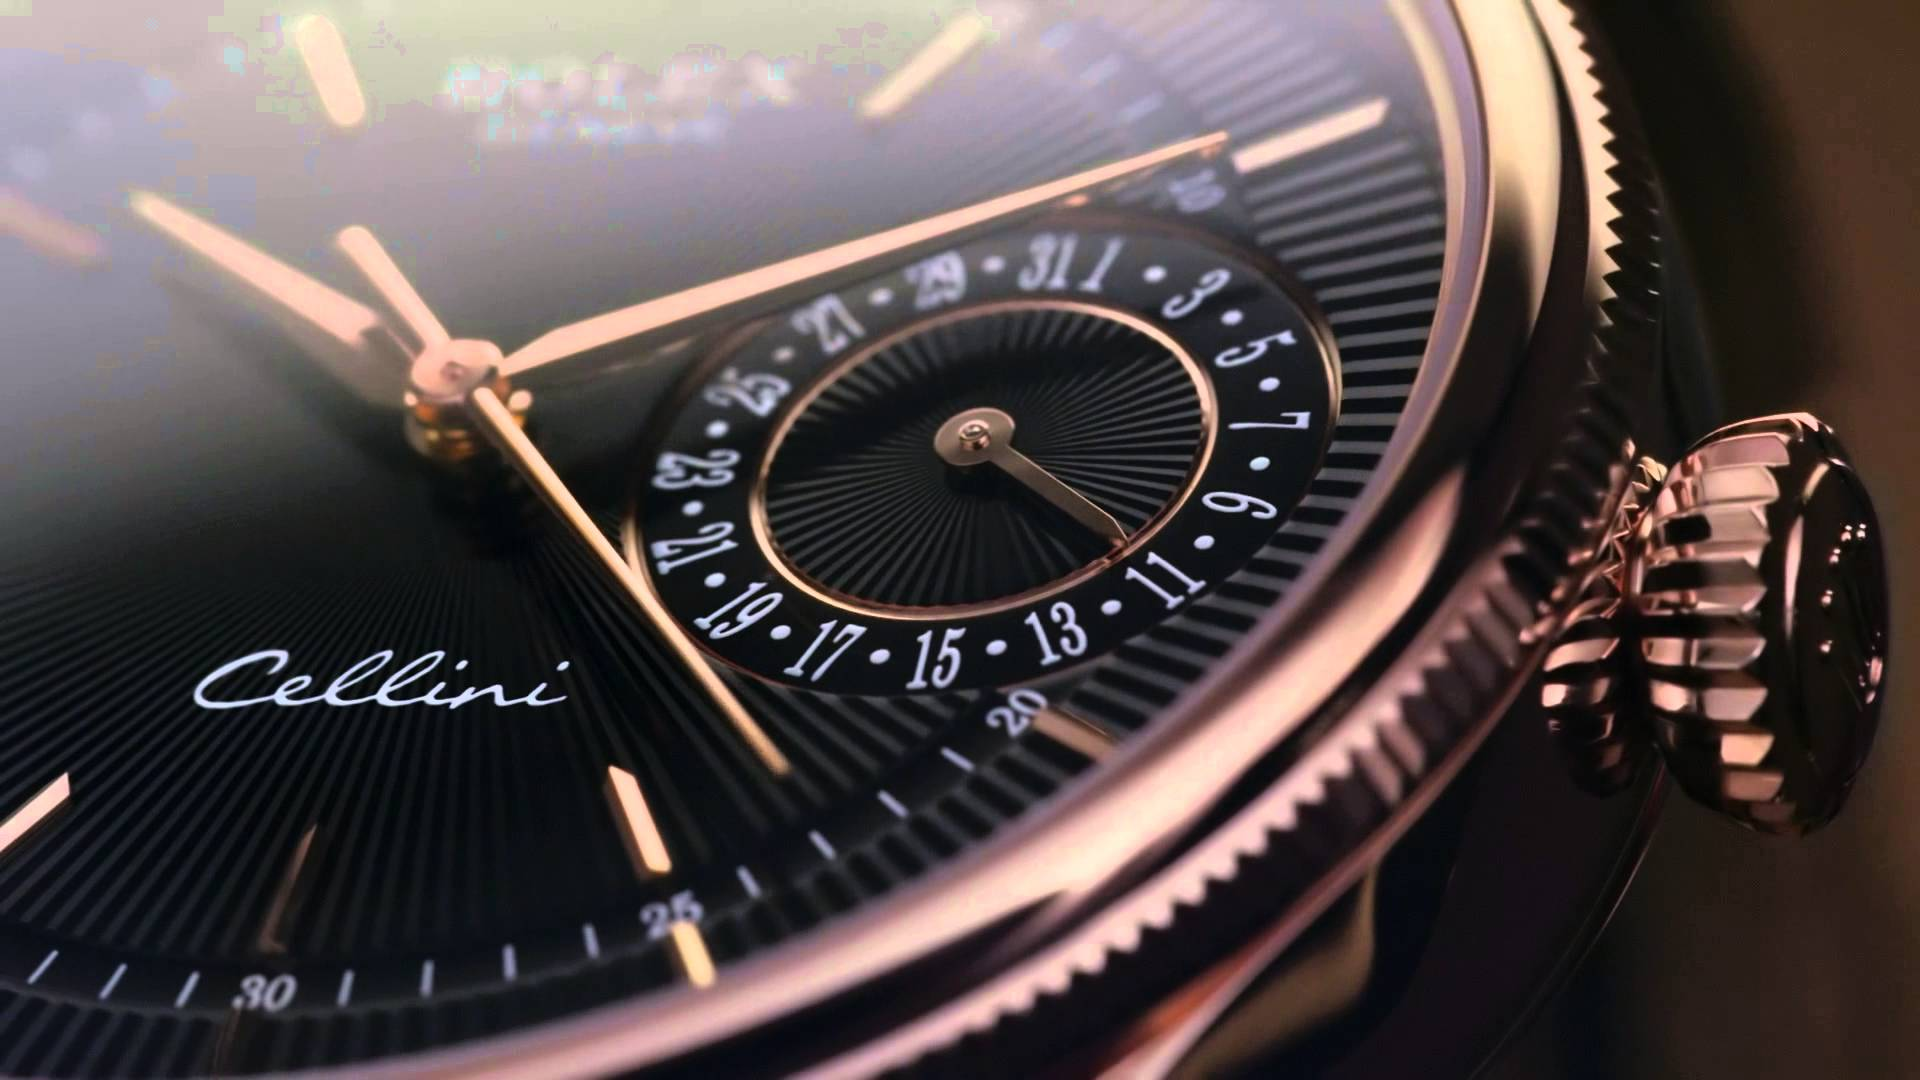 Hands On Rolex Cellini Replica Rose Gold Watches With Rose Gold Case